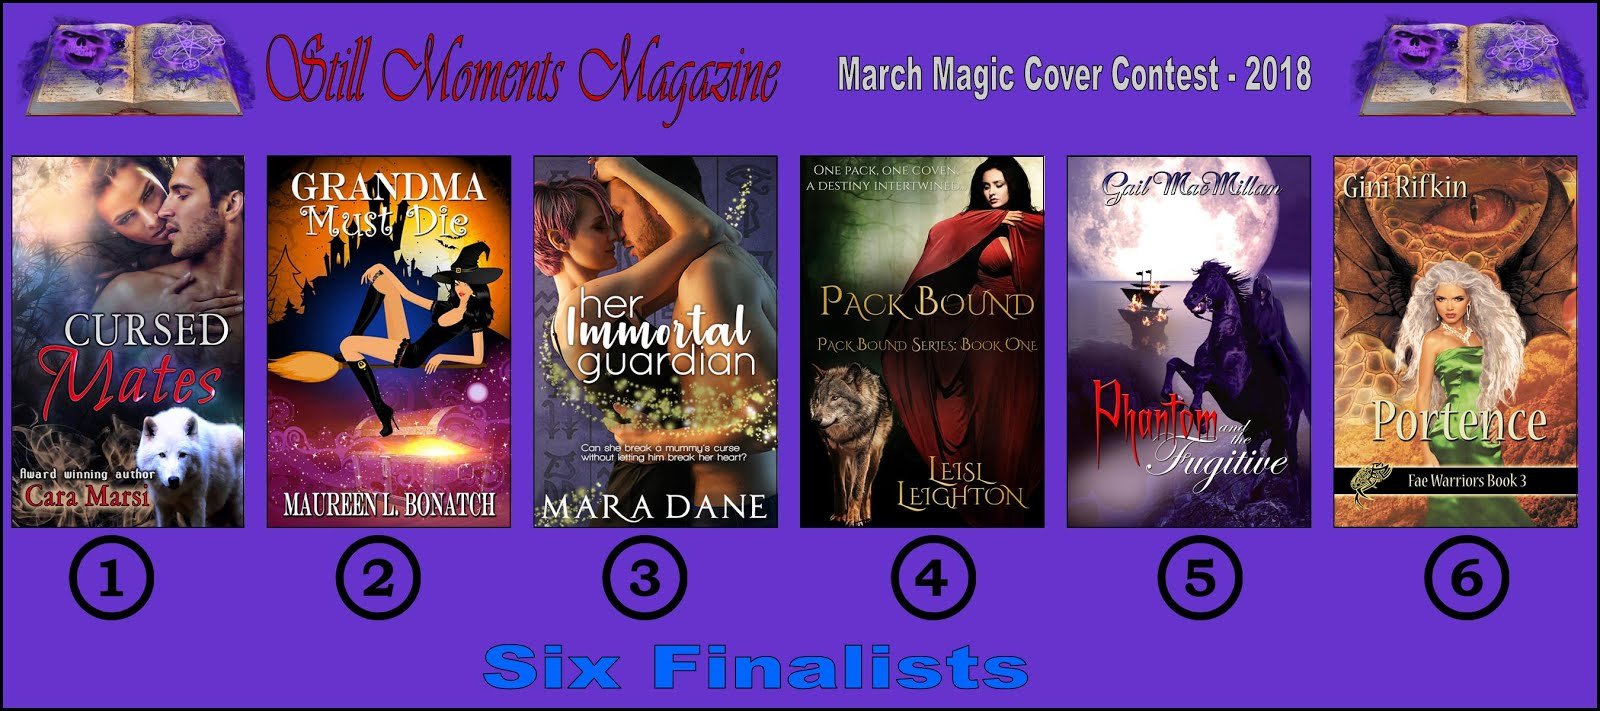 March Magic Cover Contest Finalist